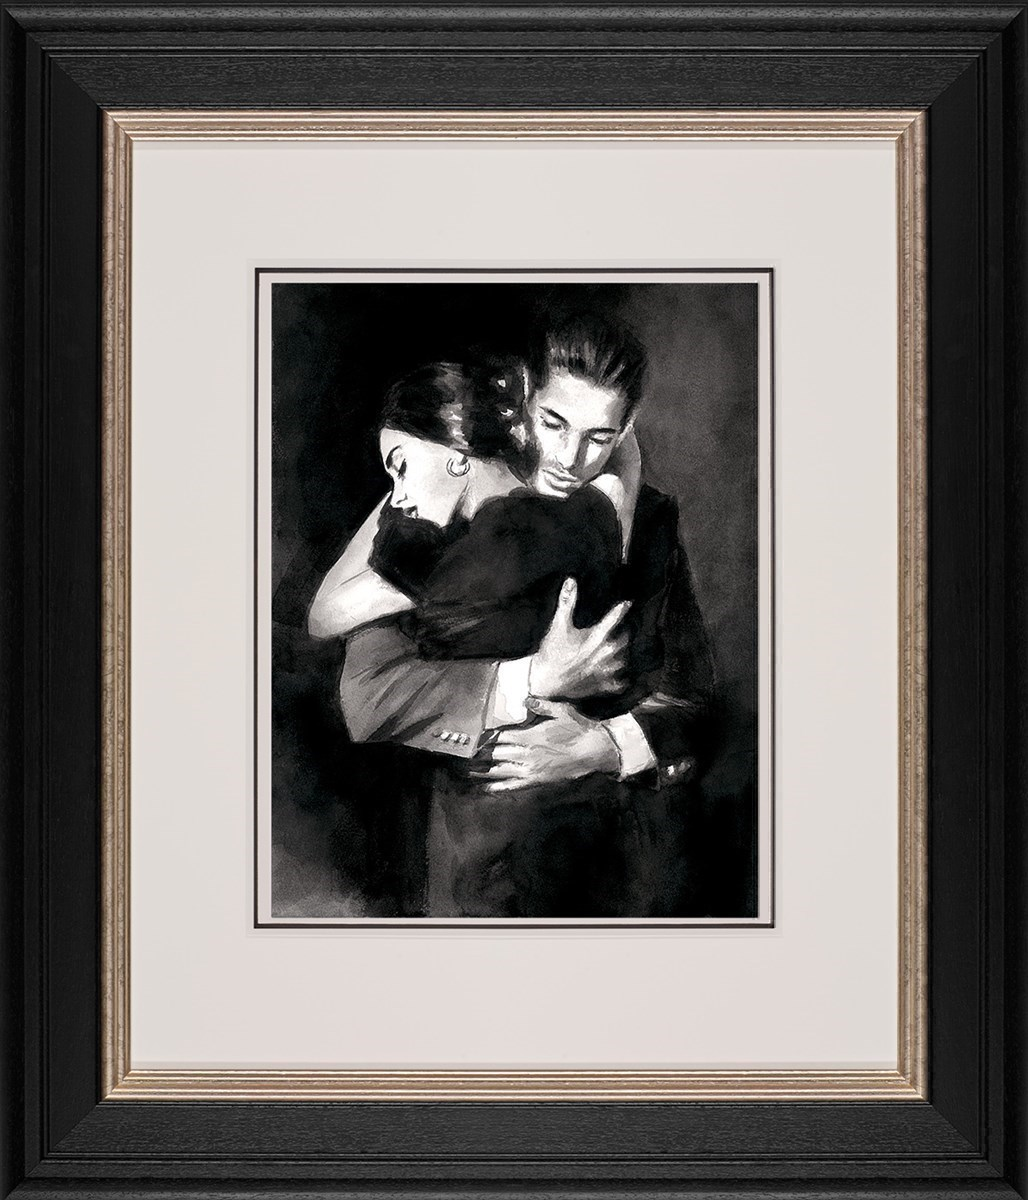 The Embrace II by Fabian Perez - Limited Edition on Paper sized 16x12 inches. Available from Whitewall Galleries